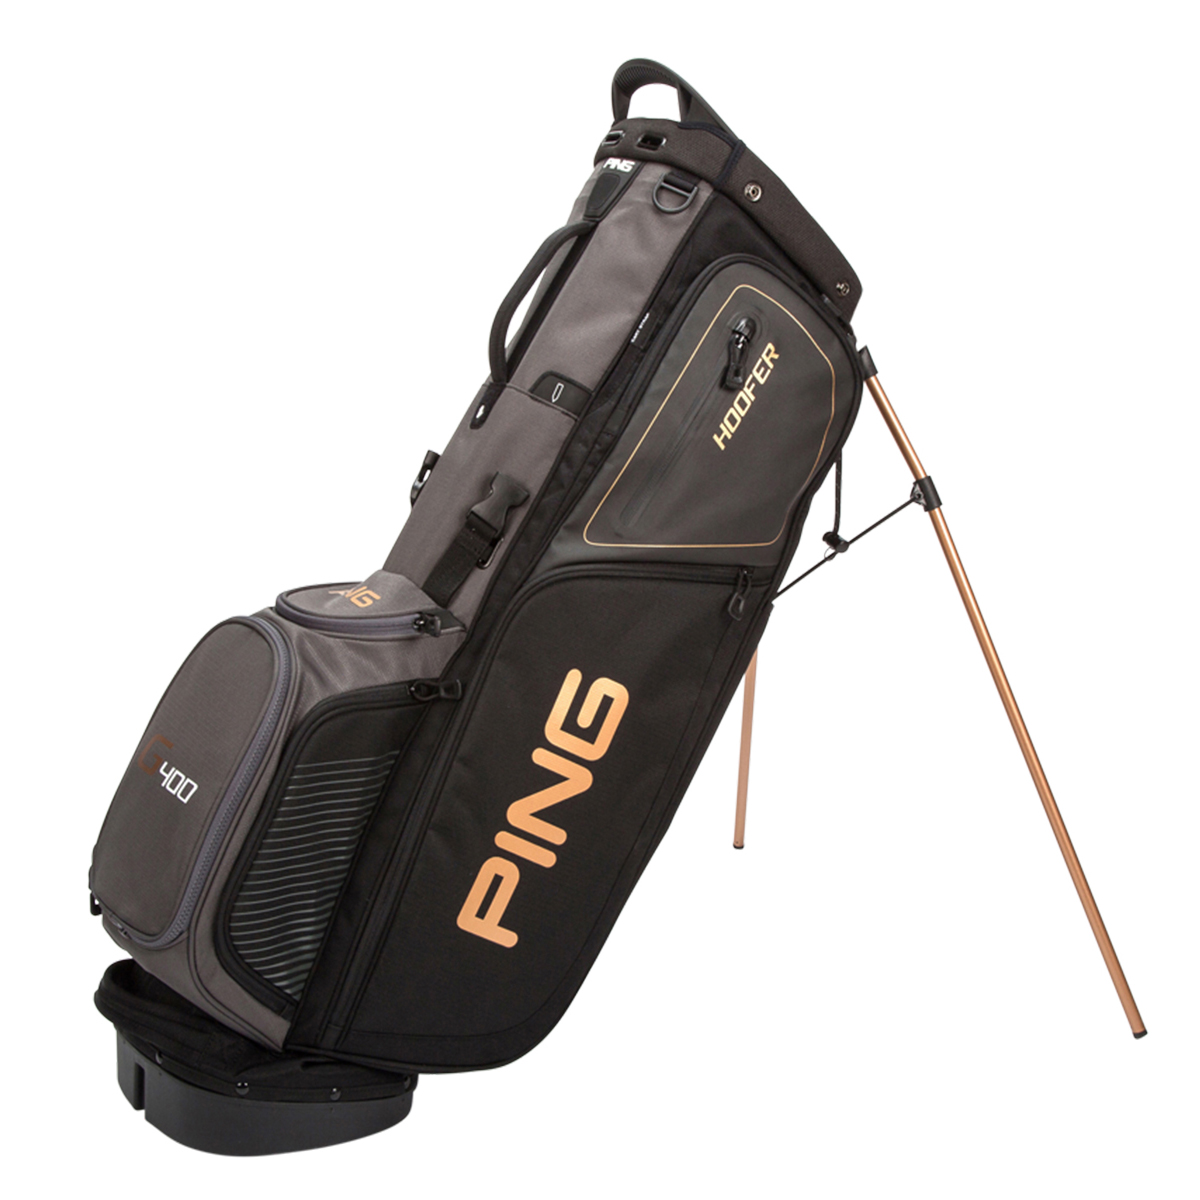 273c3a3bb0 PING Hoofer Stand Bag Black G400 - O Dwyers Golf Store